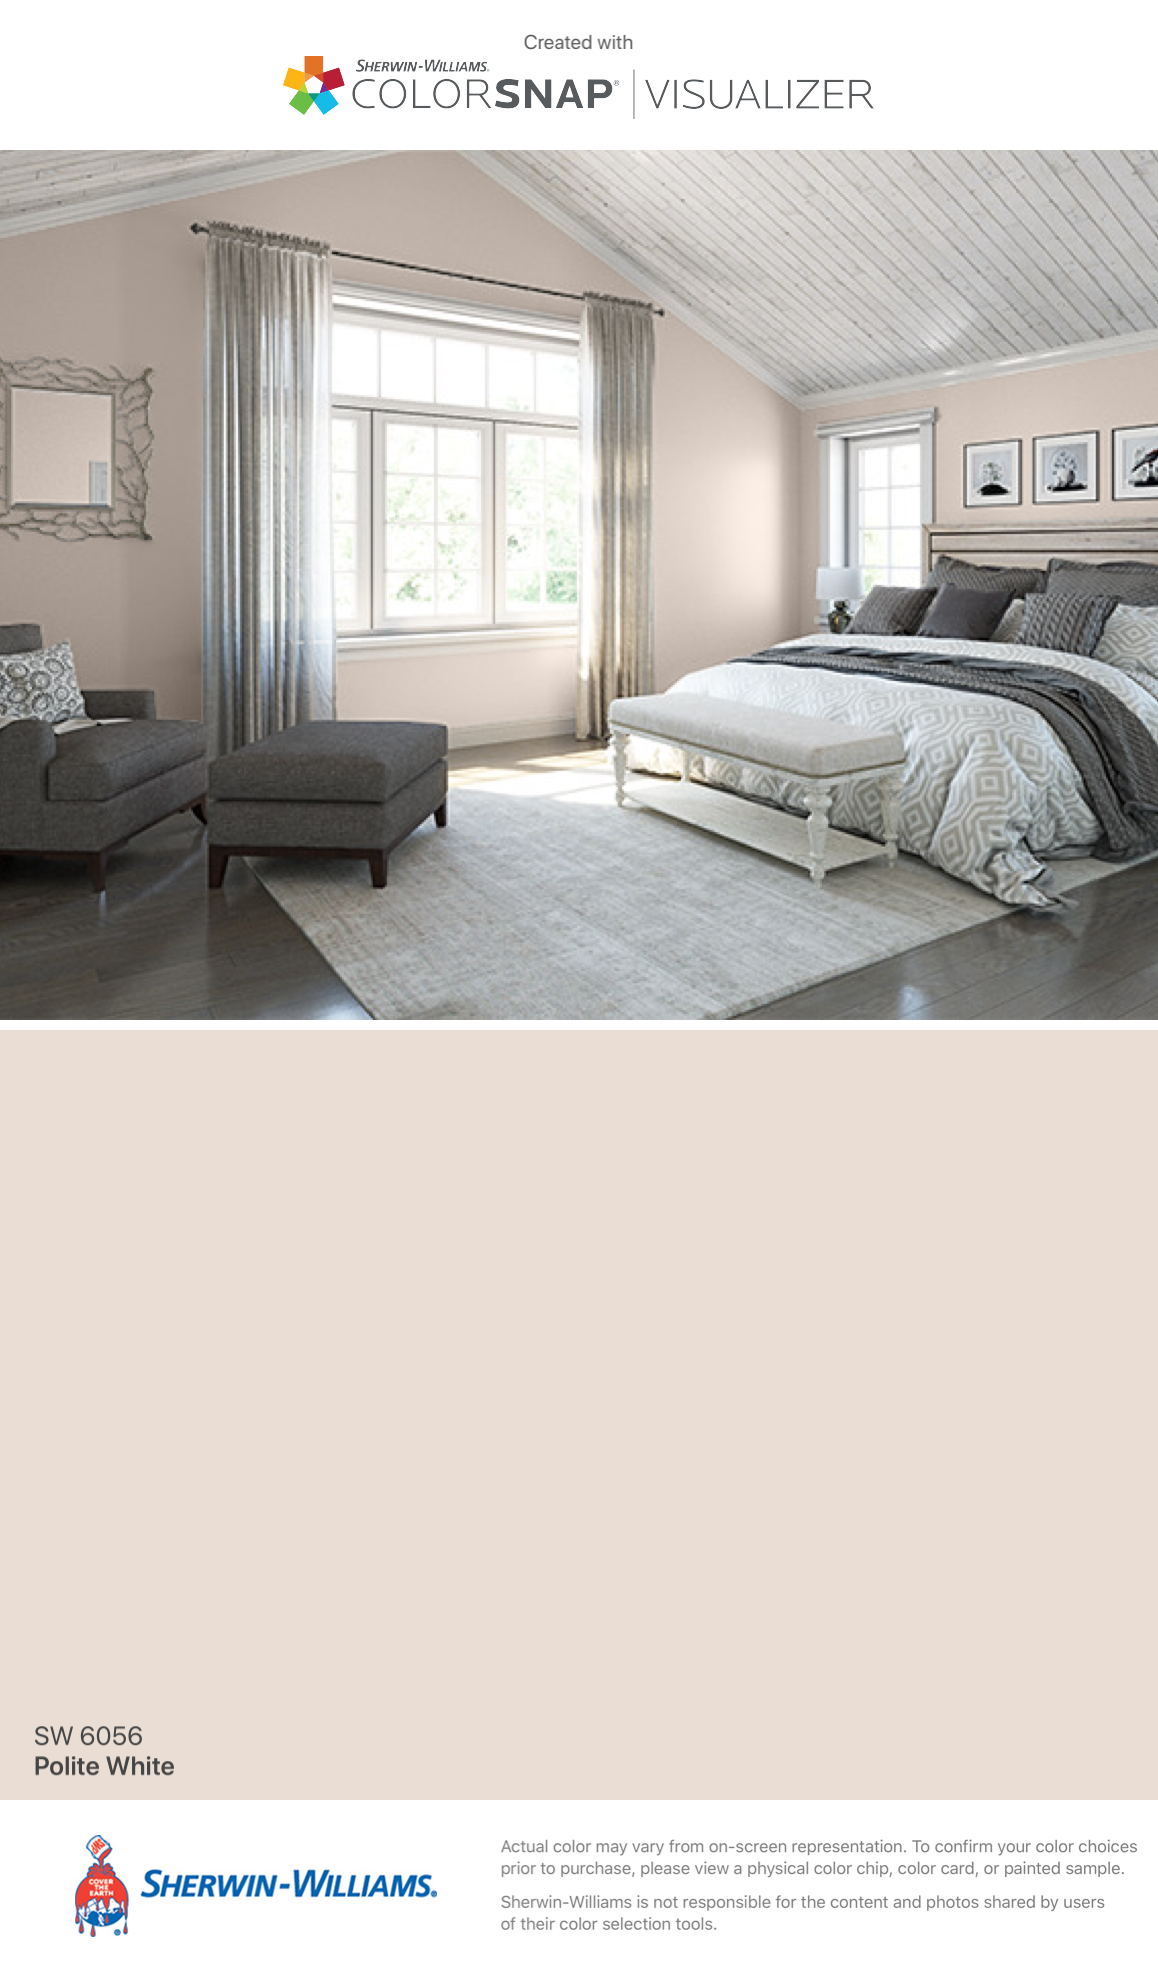 Schon GroB I Found This Color With ColorSnap® Visualizer For IPhone By Sherwin  Williams: Polite